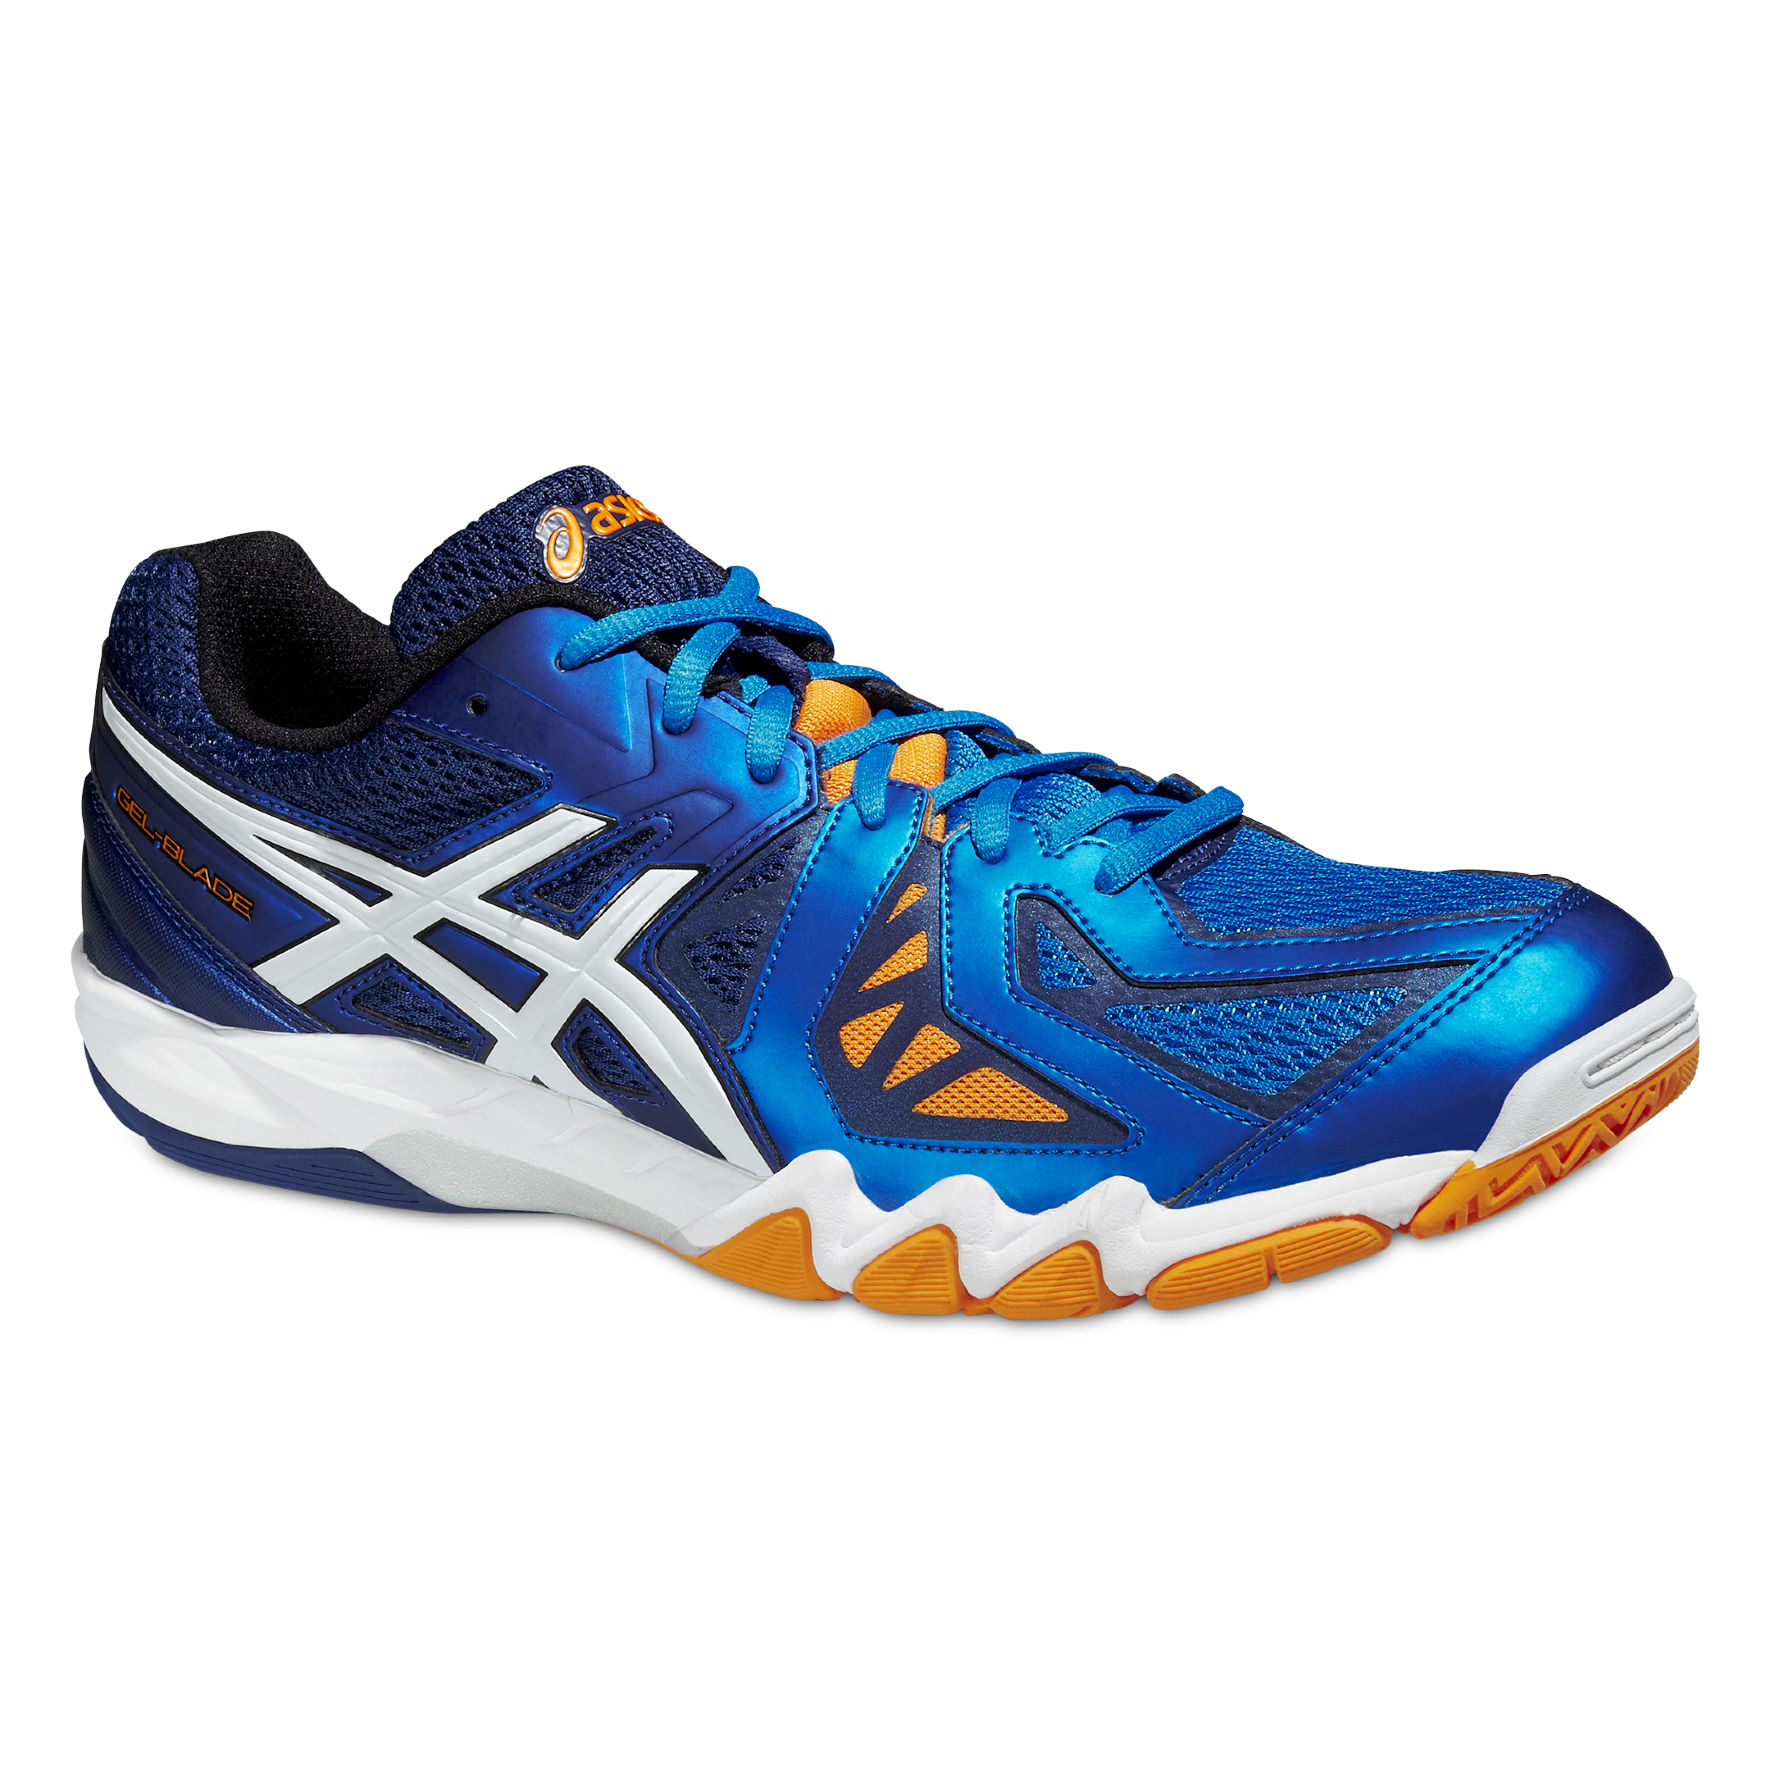 Asics Gel Blade 5 in Blau